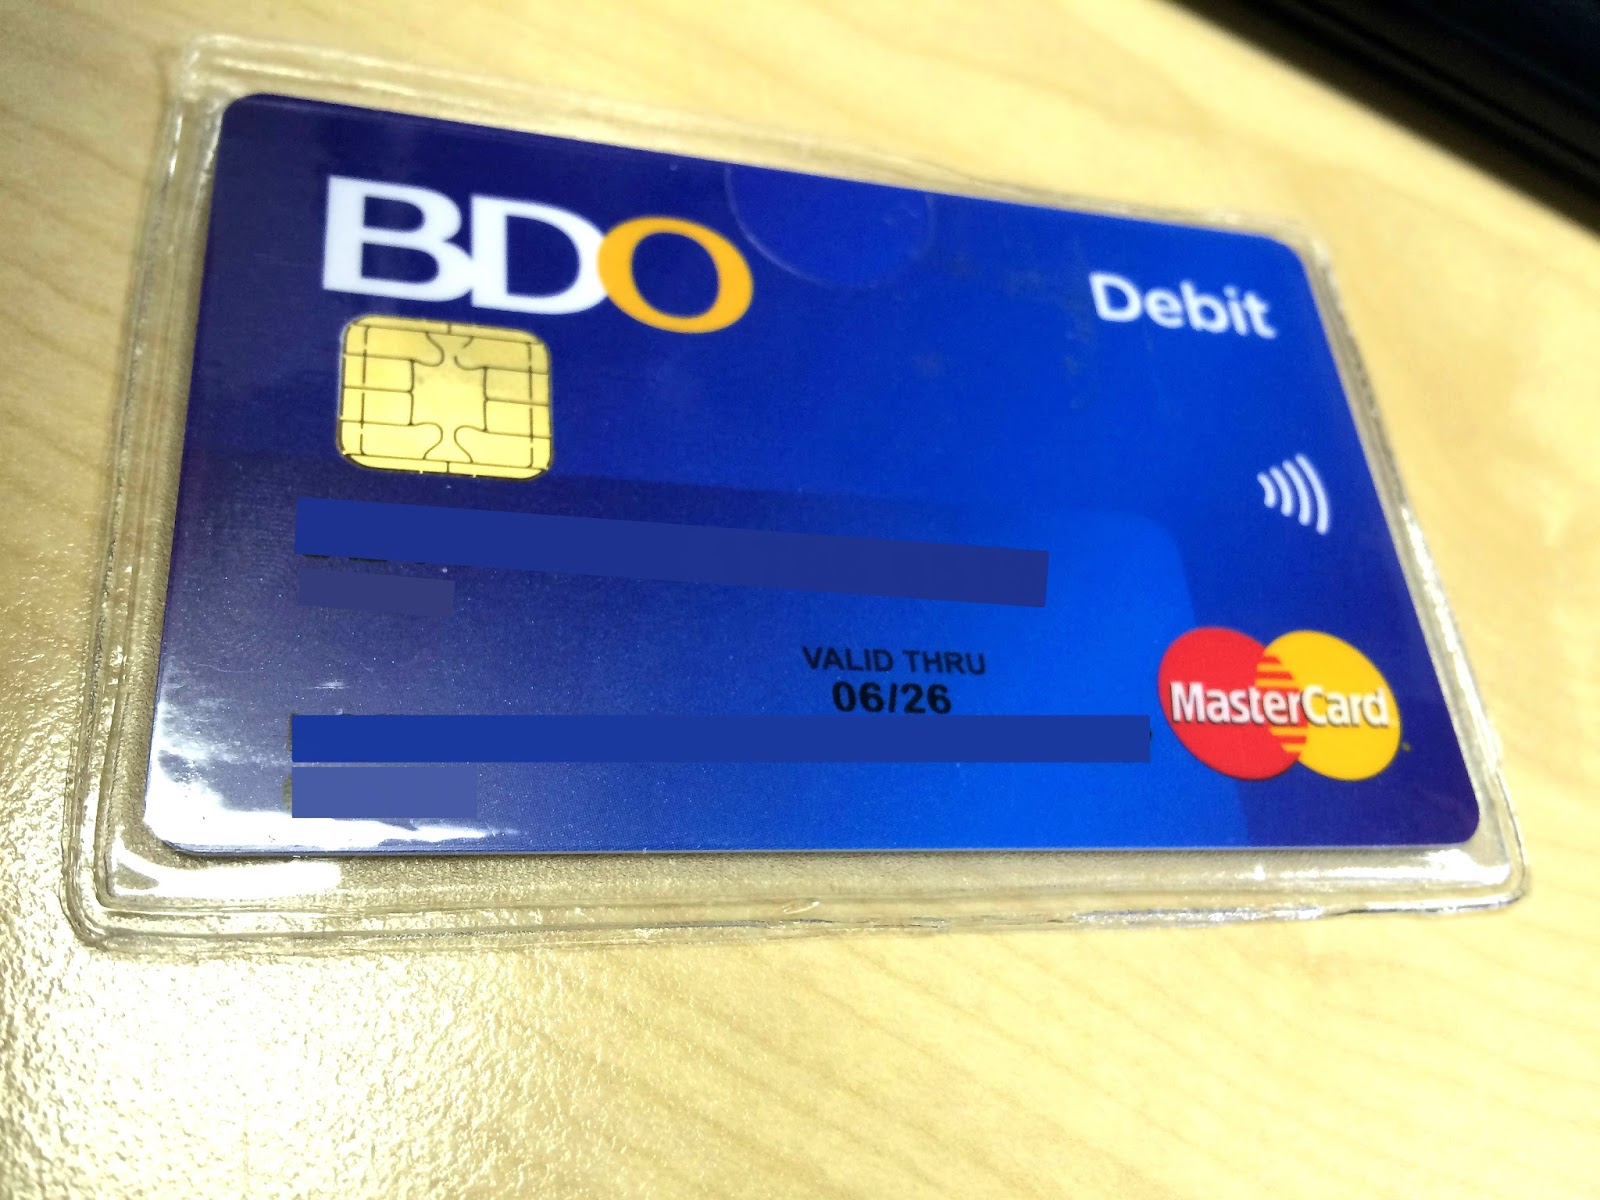 What You Need To Do If Your BDO ATM Card Was Stolen/Lost?